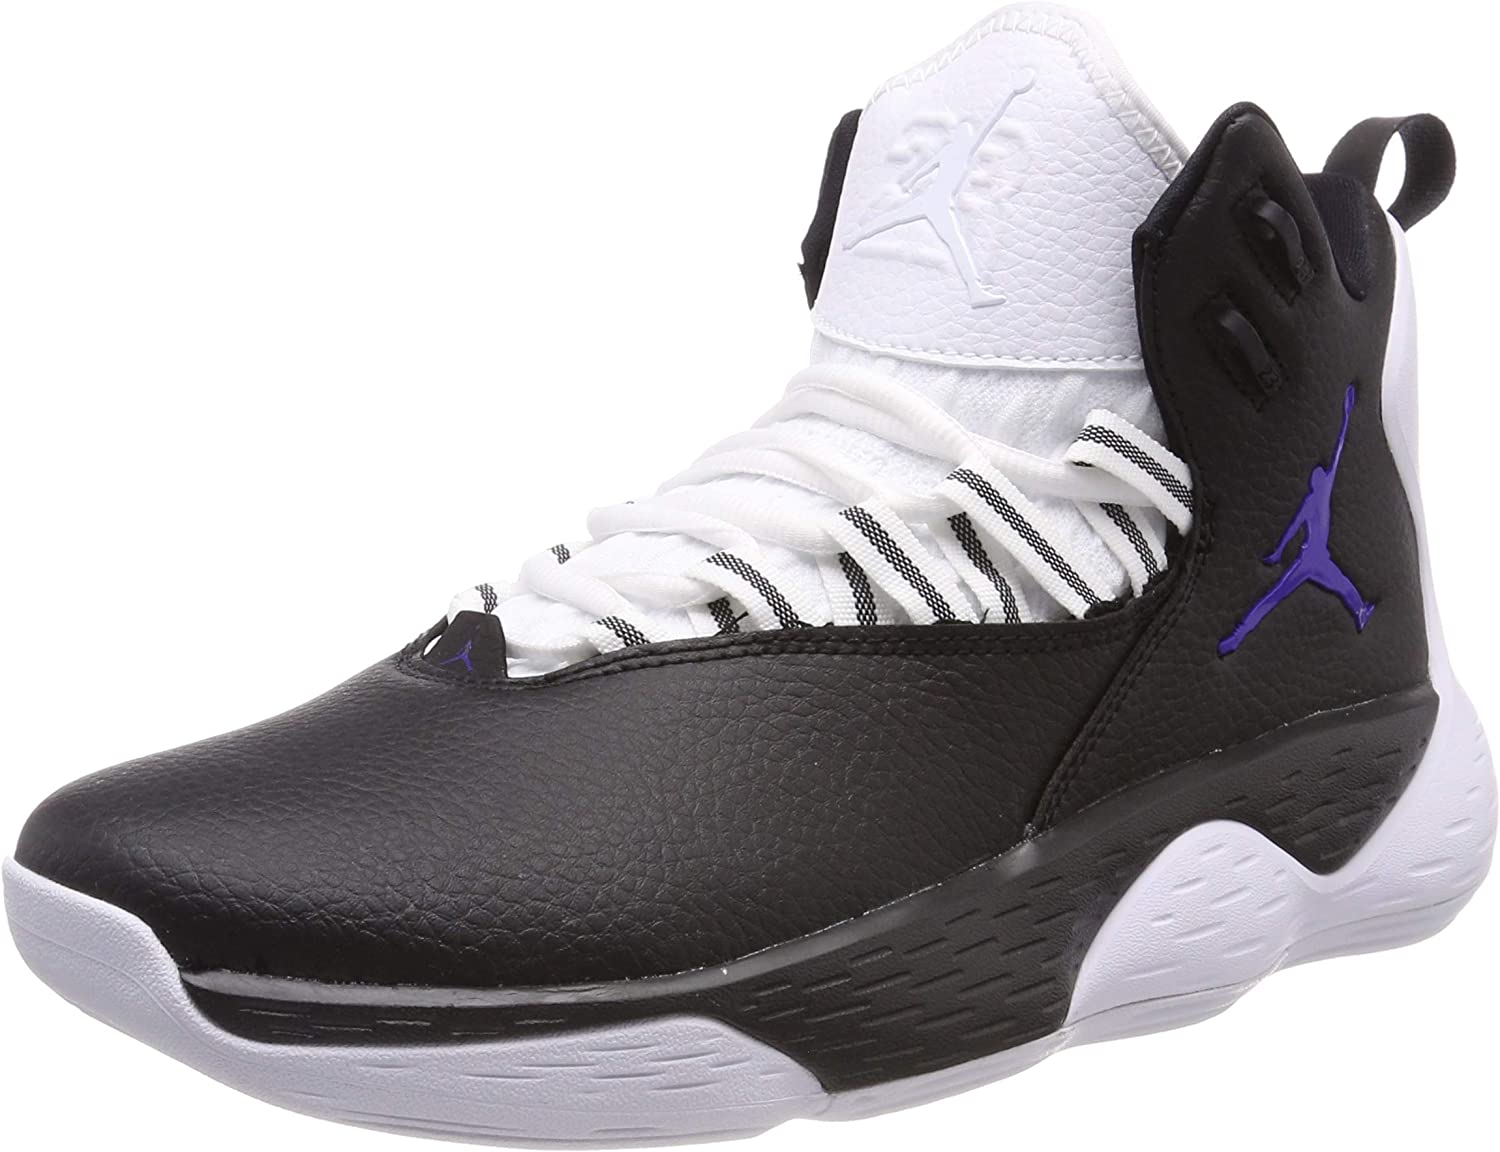 Nike Jordan Super.Fly MVP, Scarpe da Basket Uomo: Amazon.it